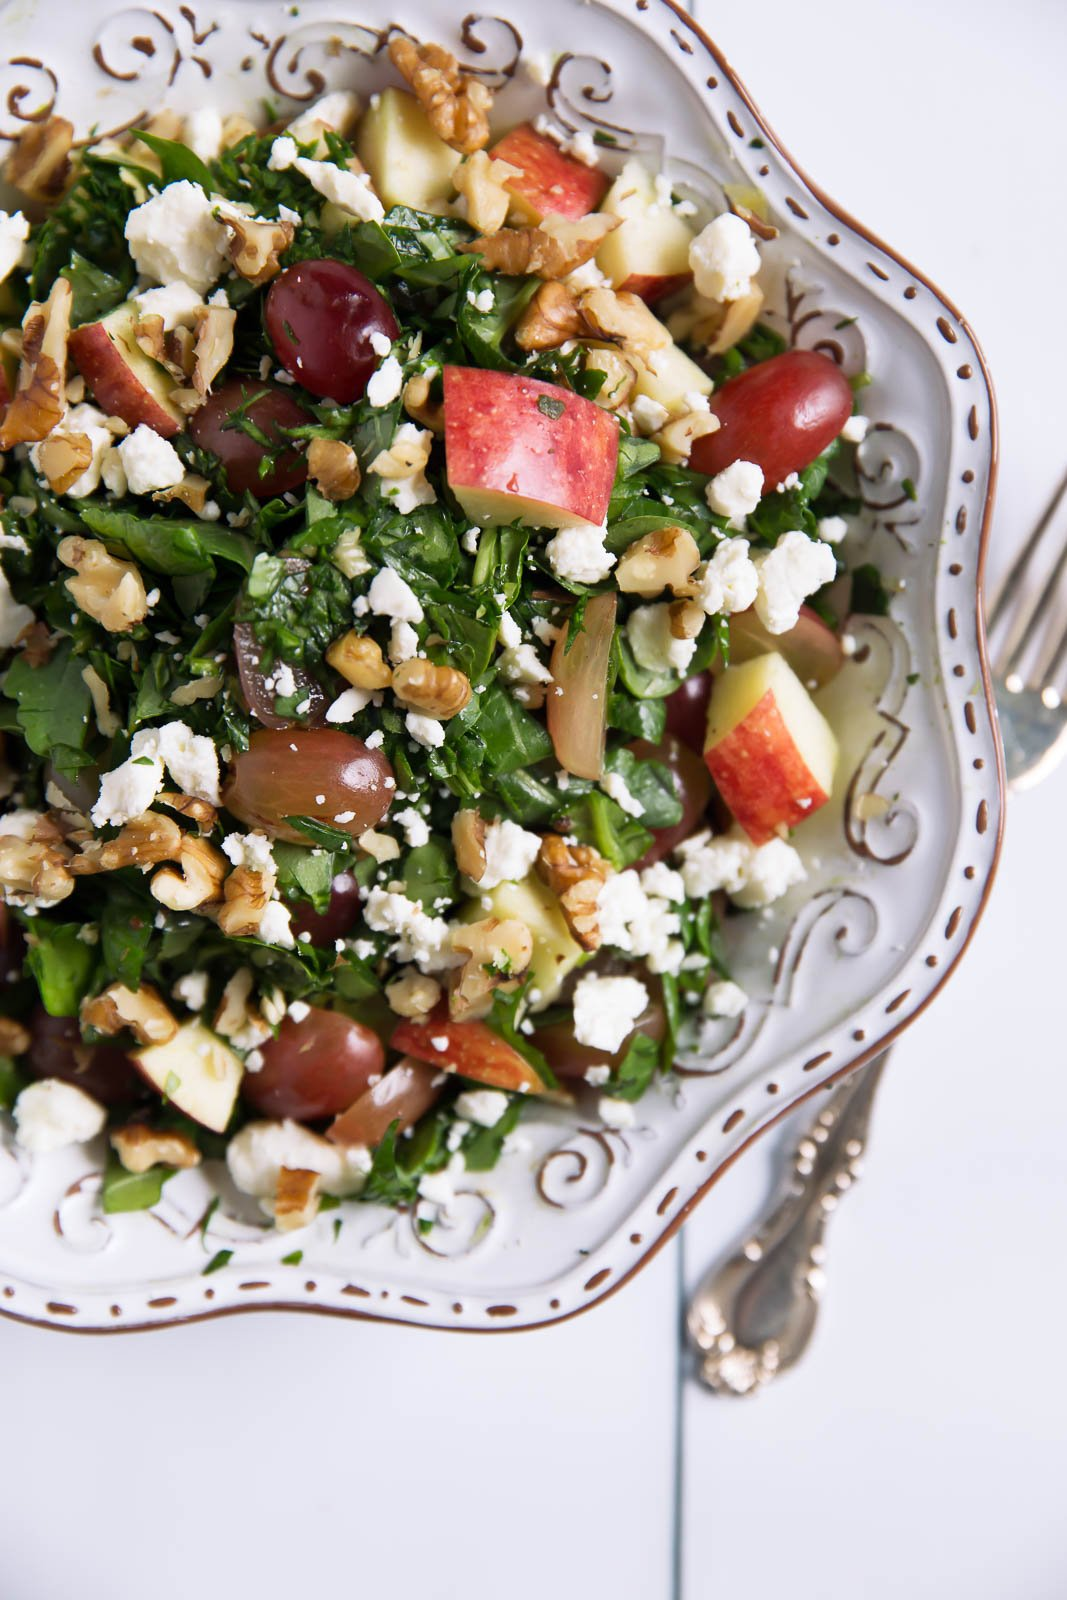 The ultimate fruit, cheese and nut salad packed with grapes, apples, toasted nuts, feta and a fantastic balsamic dressing. Easy to make & satisfying.